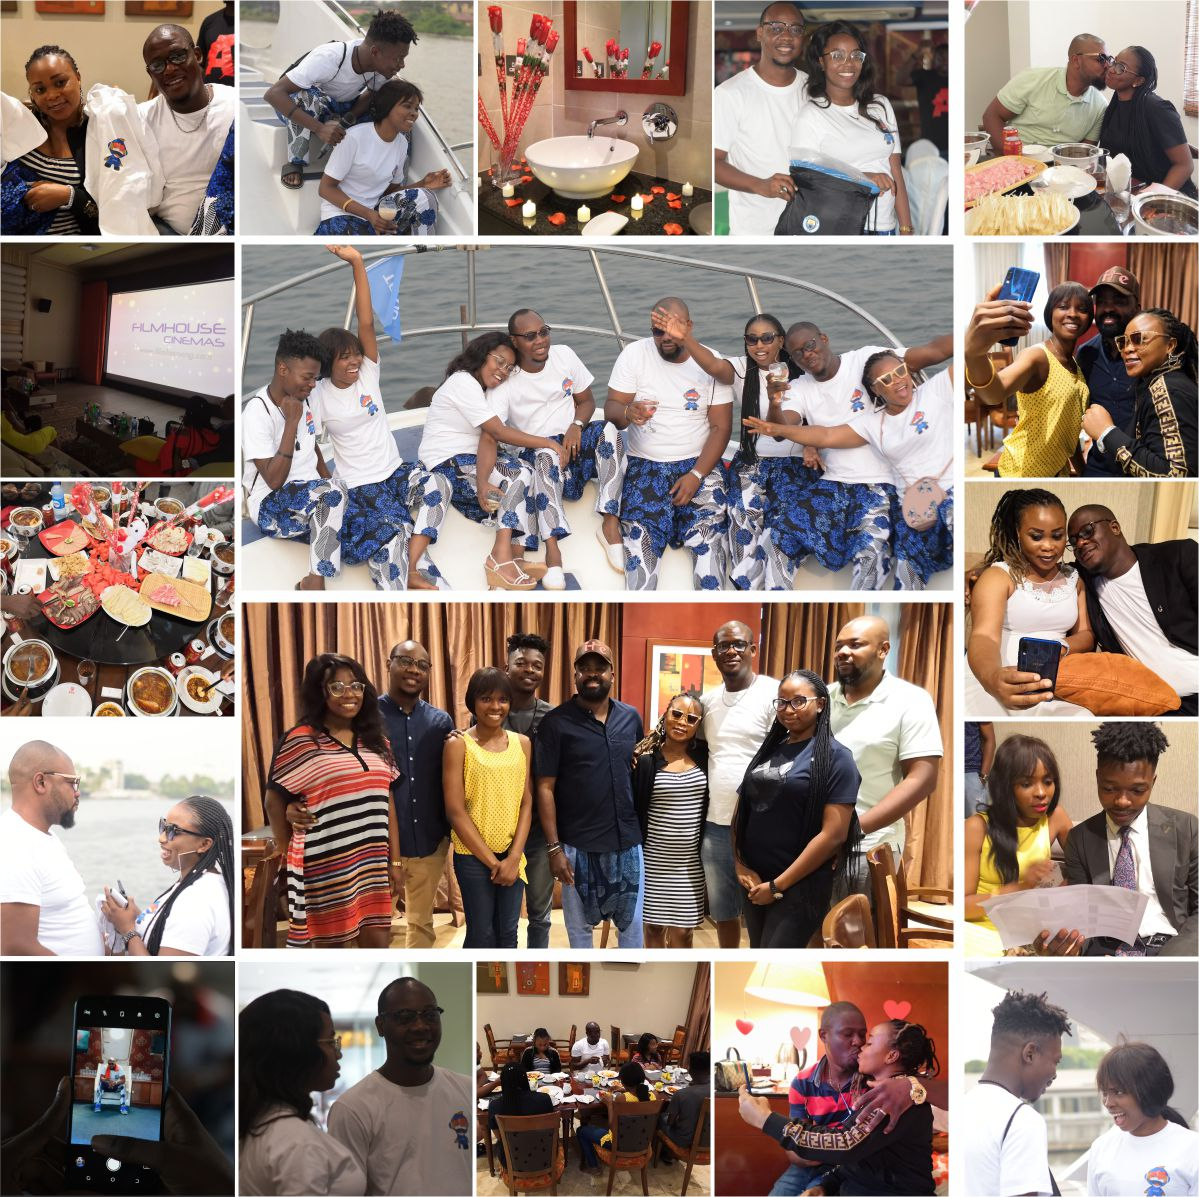 TECNO Hosted 4 Couples to a Special Getaway on Valentine's Day - TECNO Hosted 4 Couples to a Special Getaway on Valentine's Day